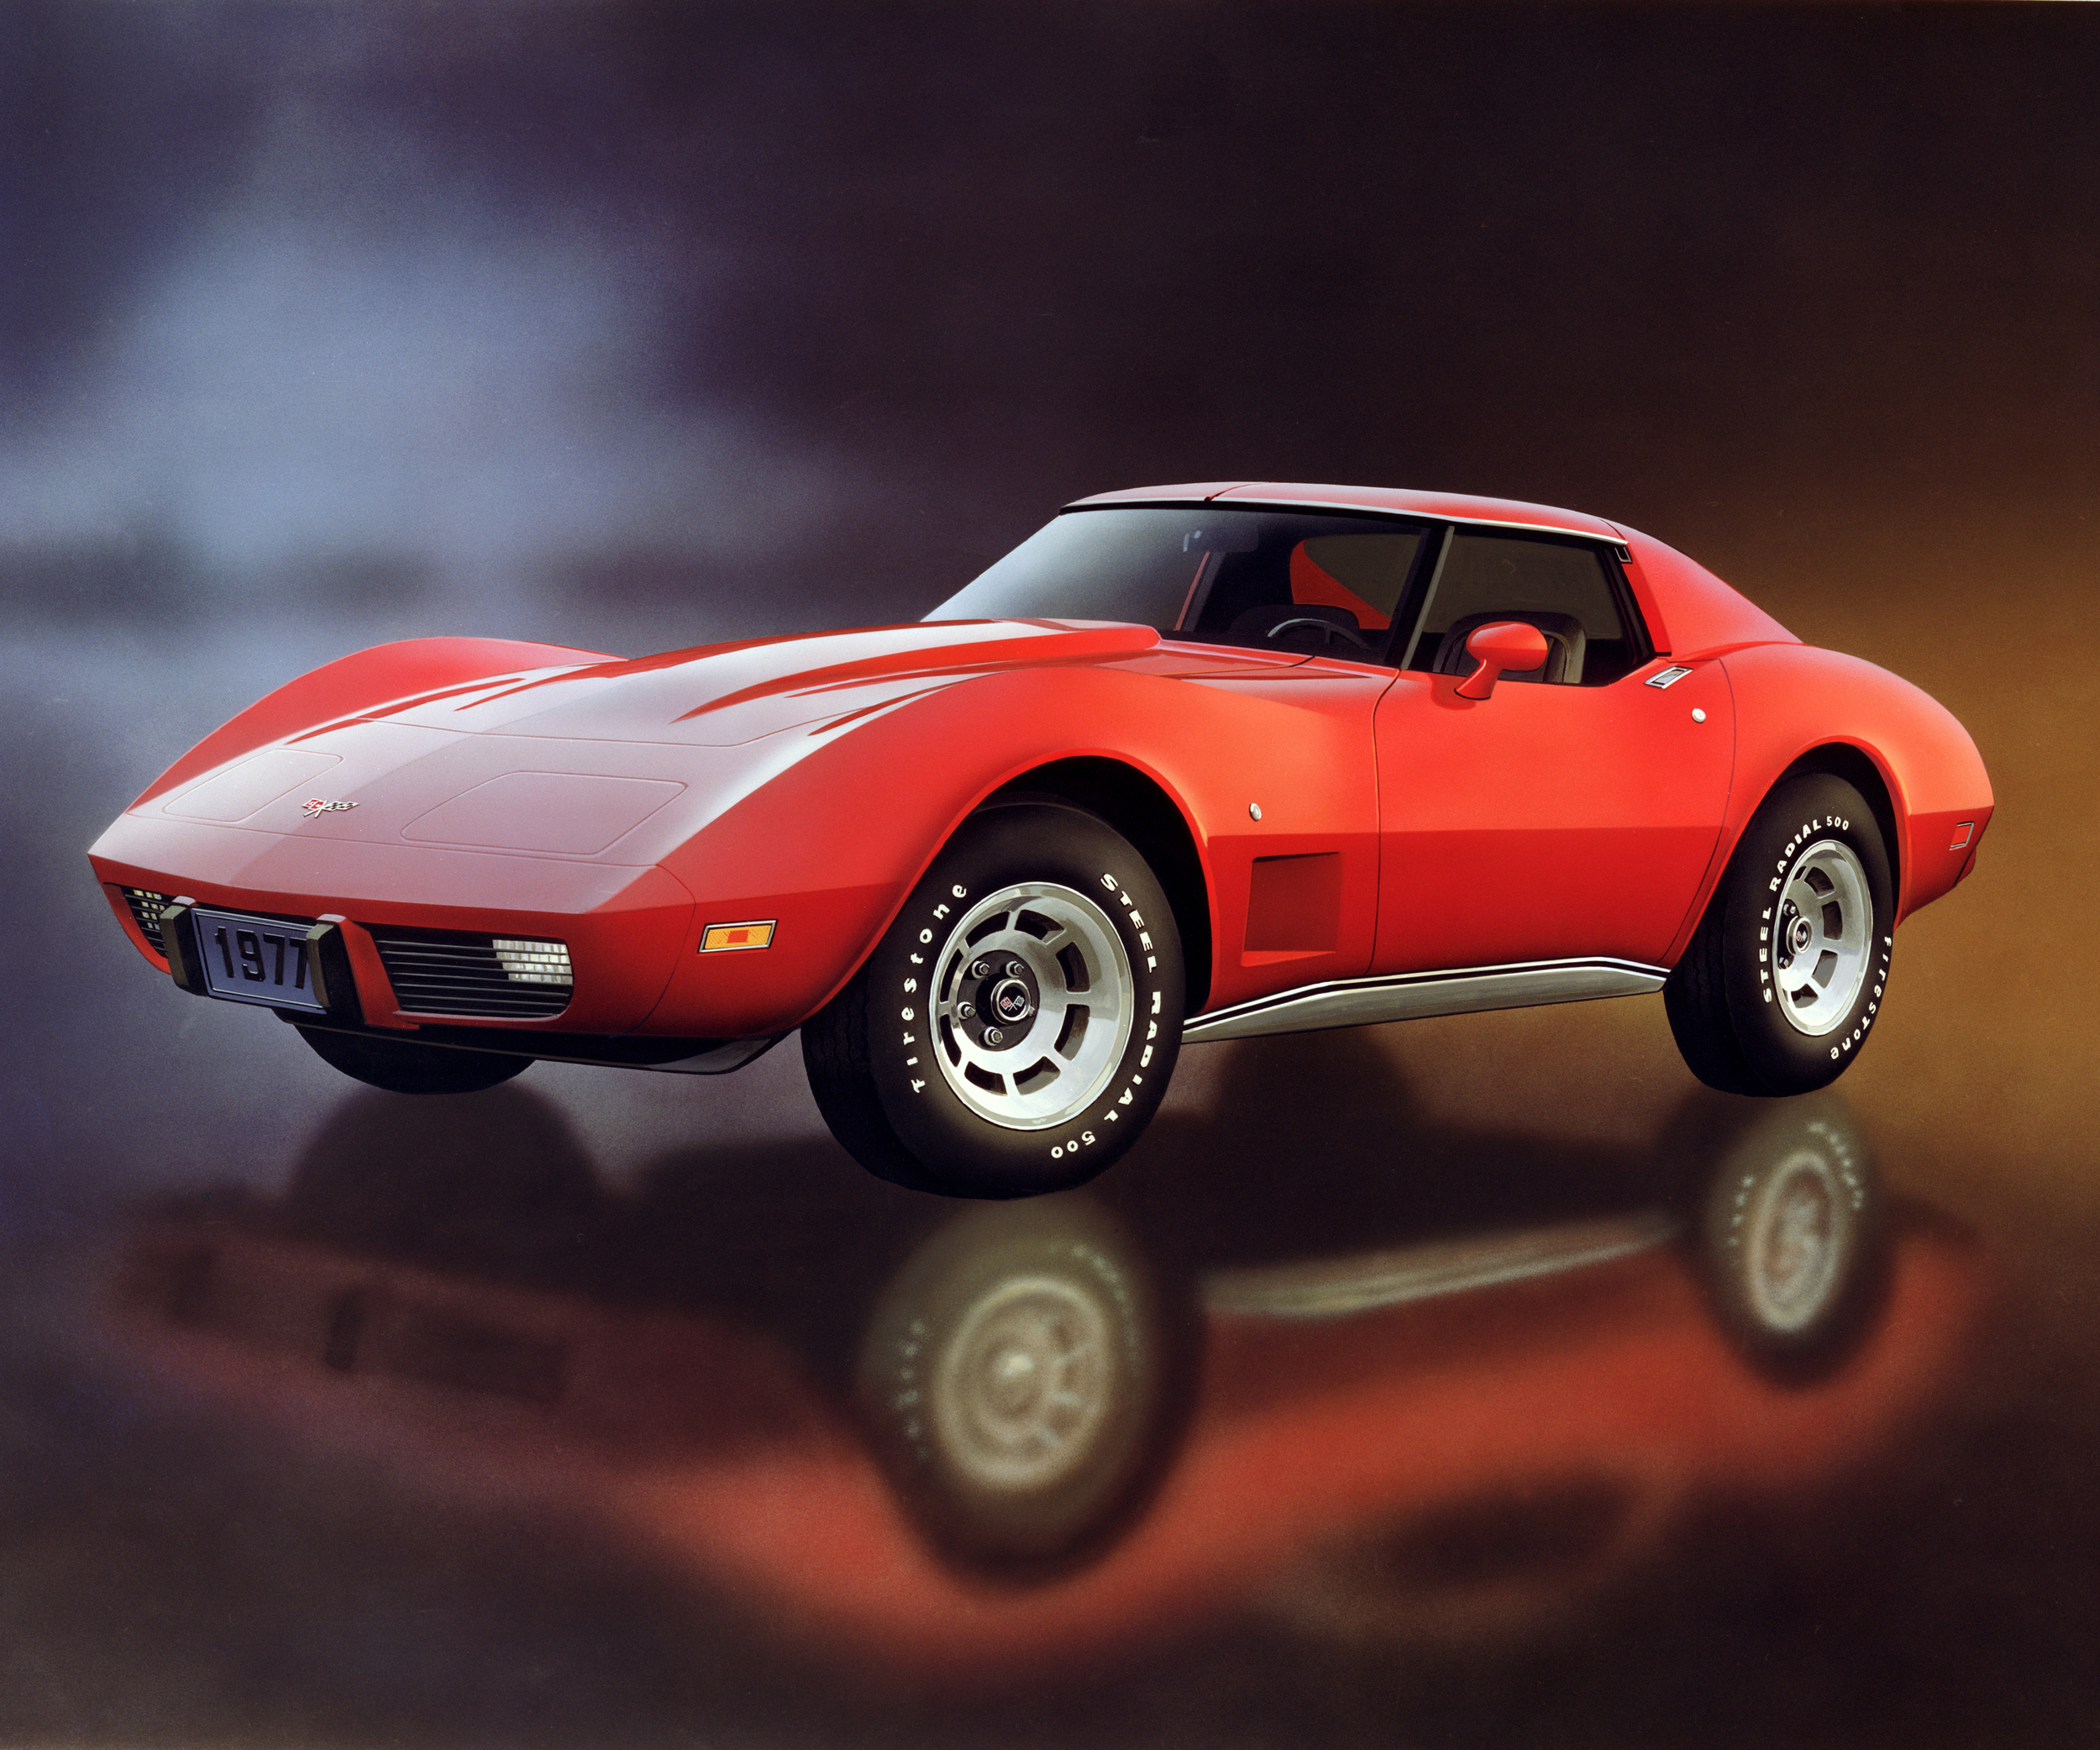 1977 corvette c3 - Retro Gallery Archive (Full Size)